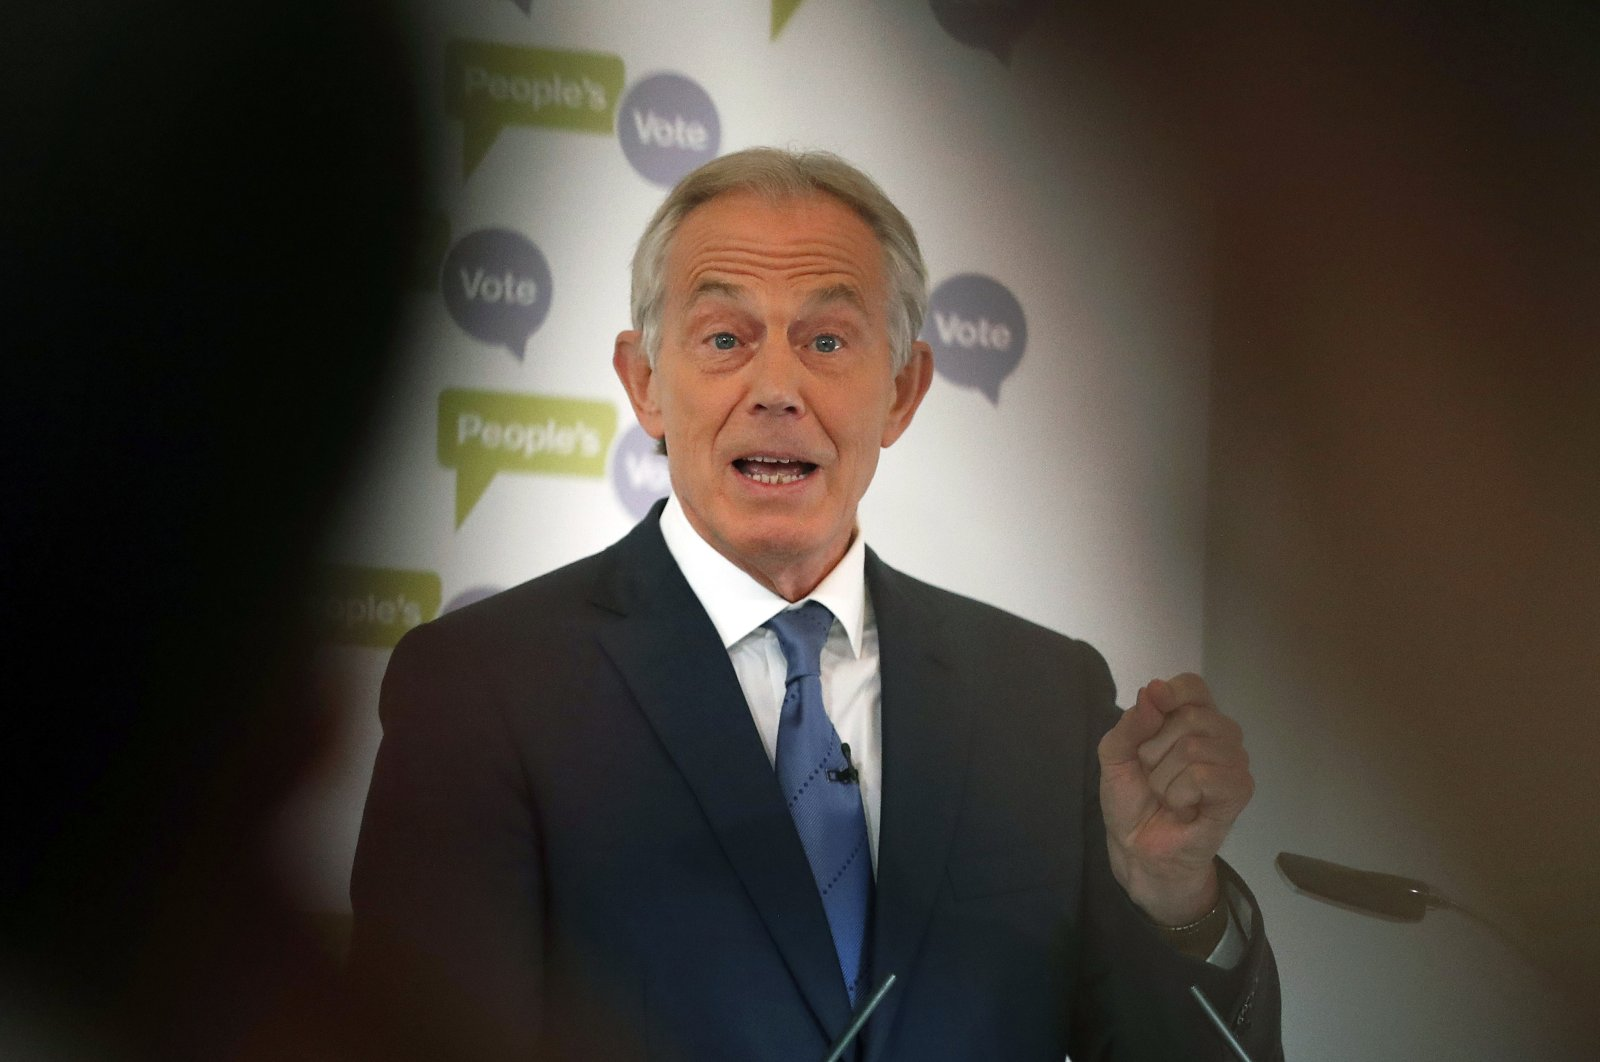 Britain's former Prime Minister Tony Blair makes a speech on Brexit at the British Academy in London, U.K., Dec. 14, 2018. (AP Photo)